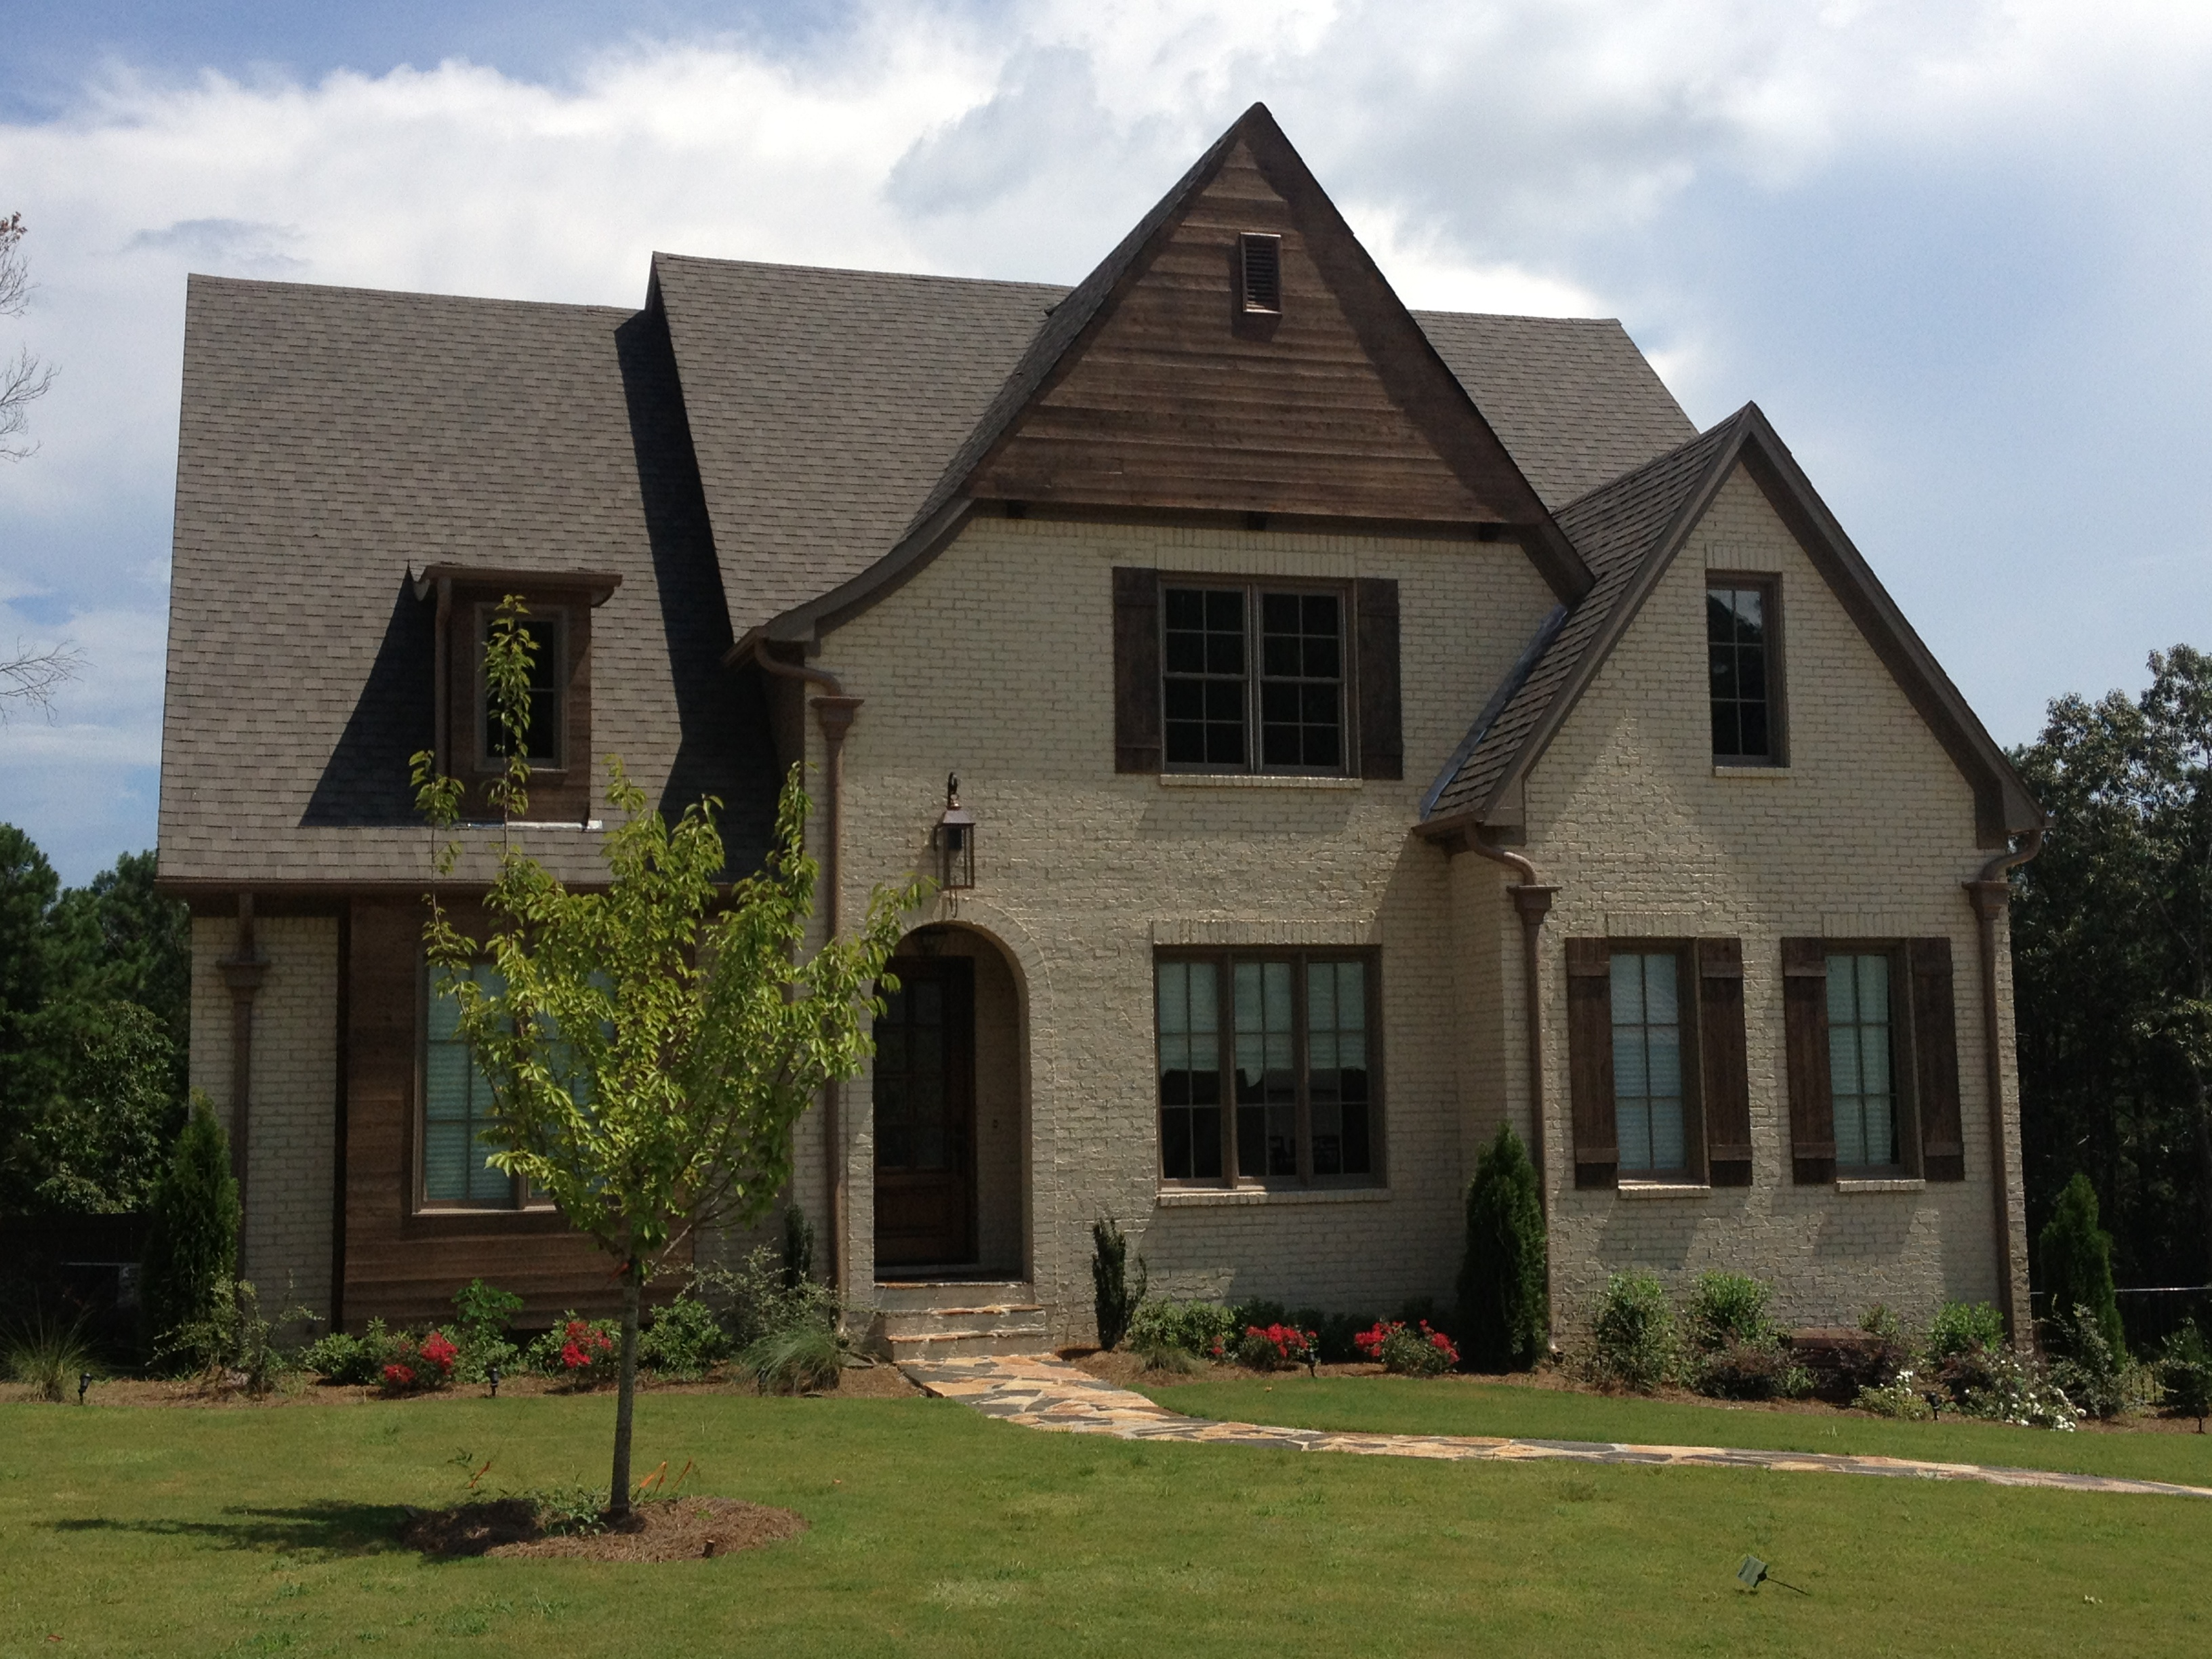 kadco homes the best custom home builders in birmingham